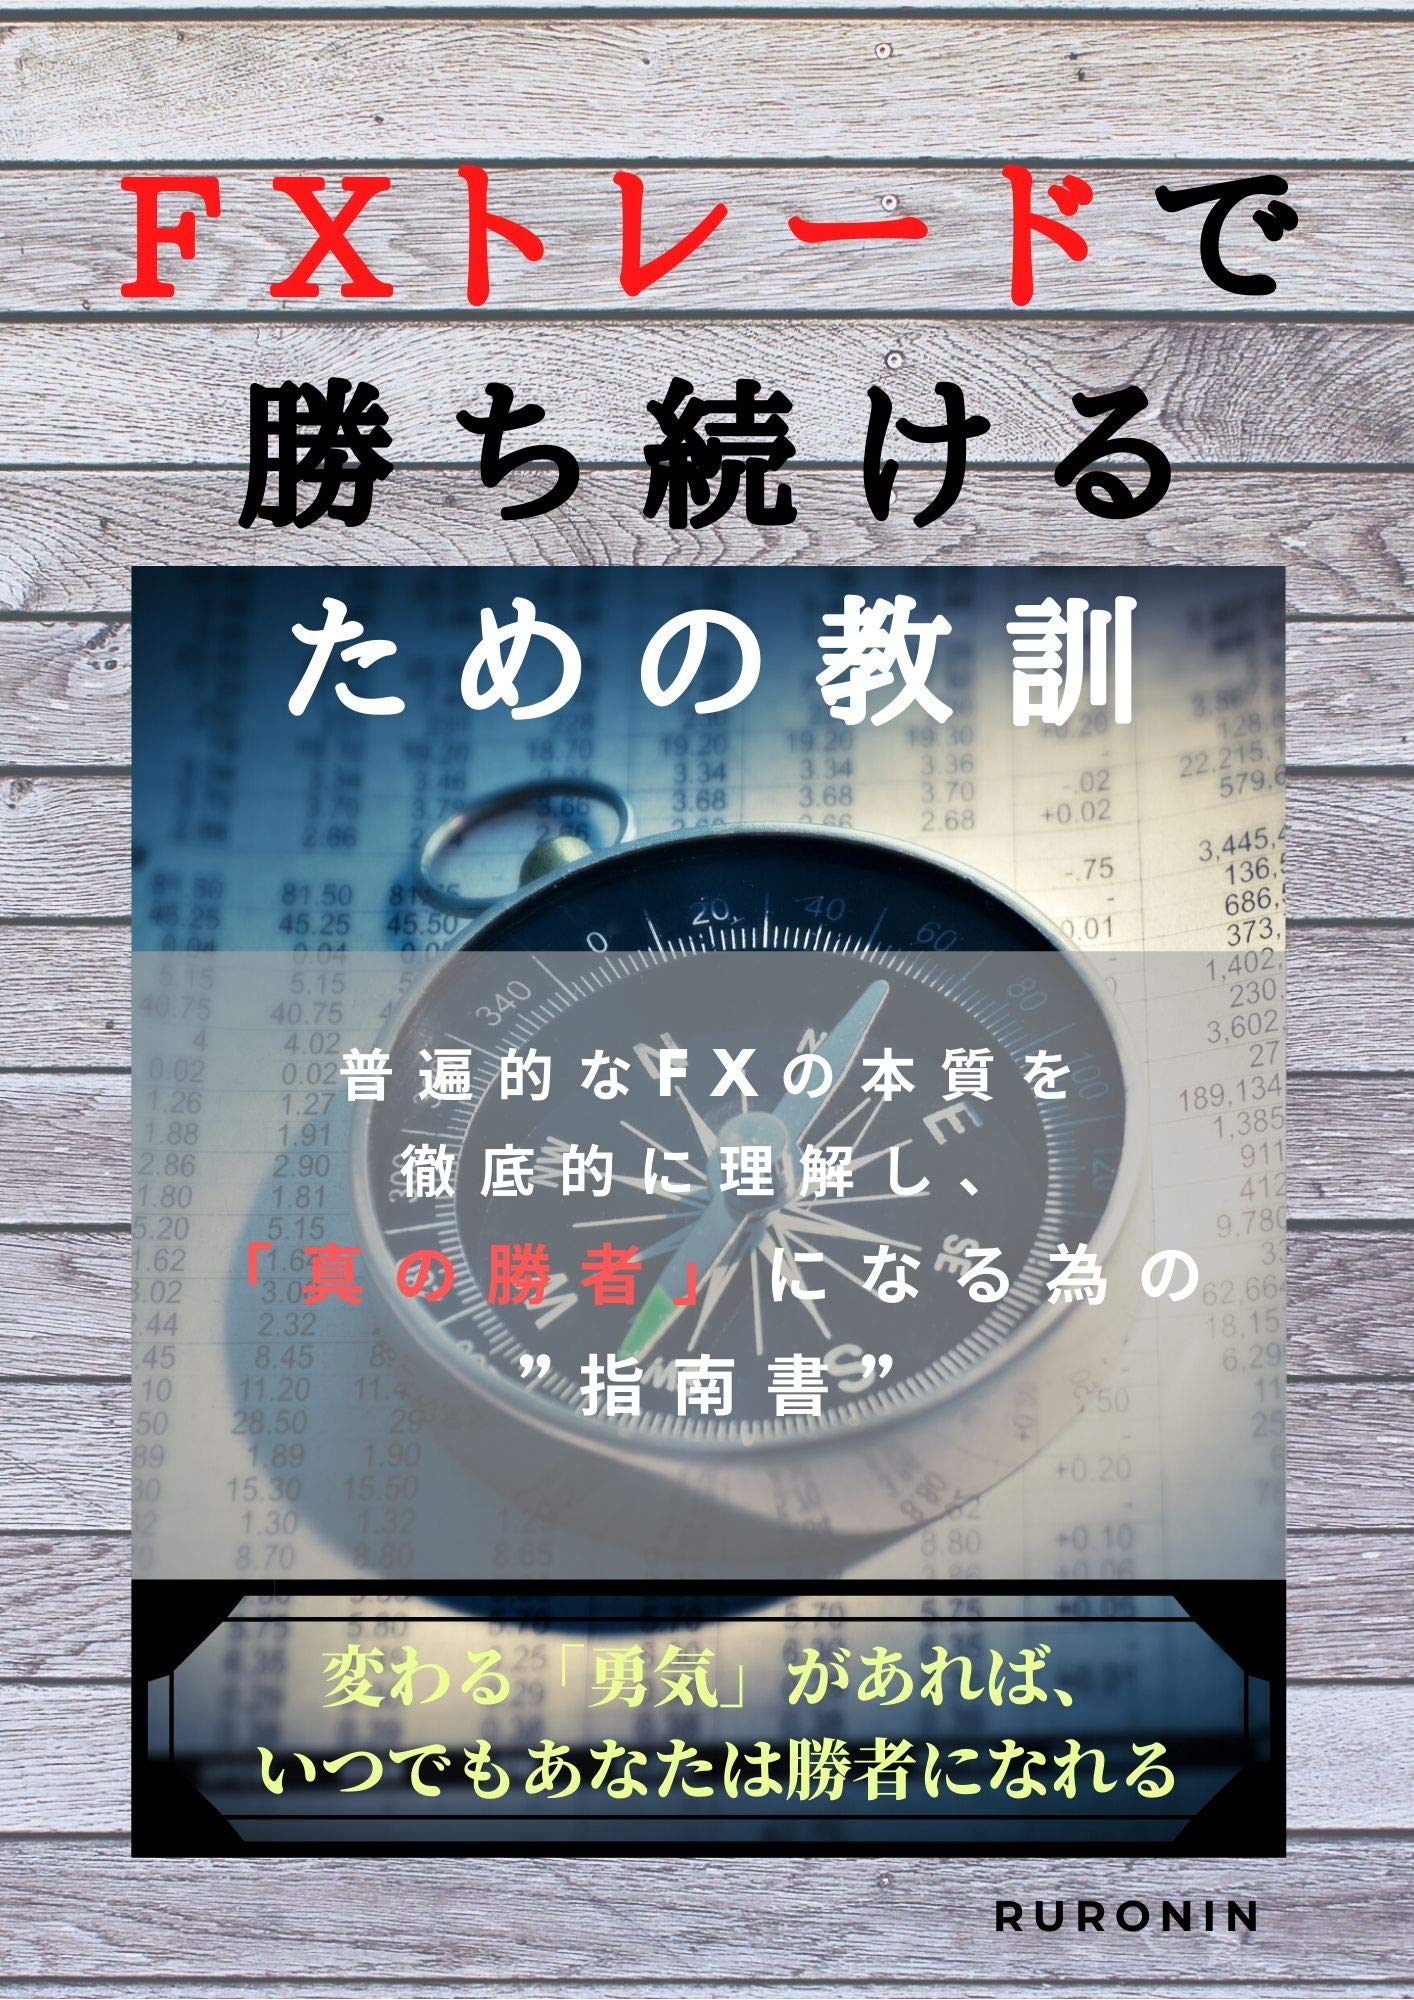 lessons to continue winning in FXtrede-The first books (Japanese Edition)